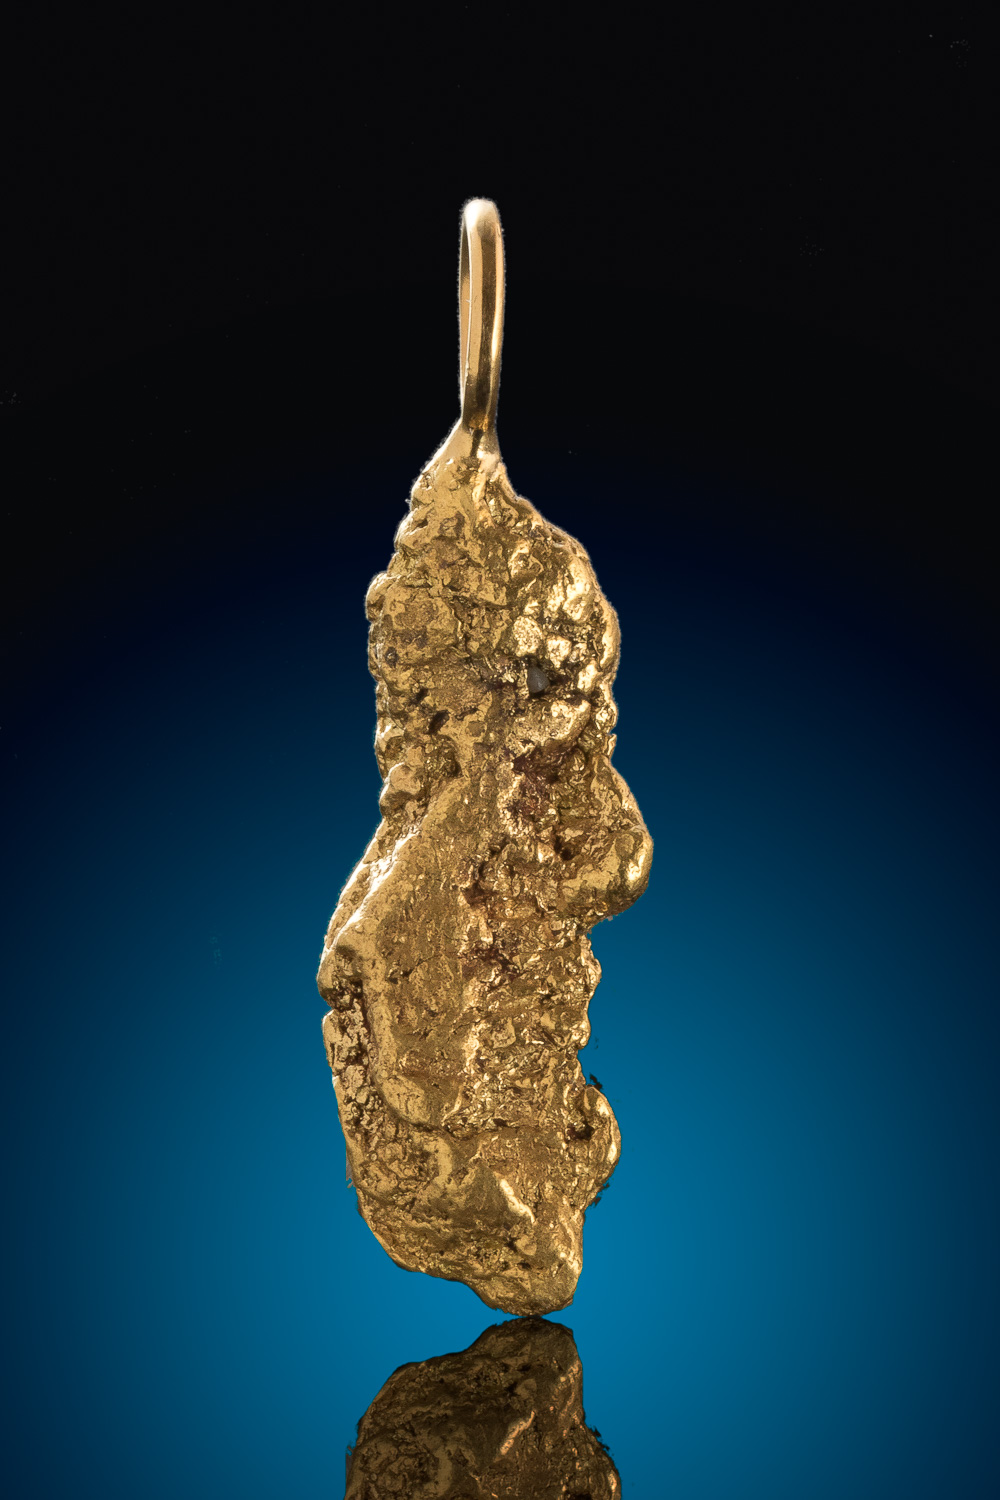 Mike's Choice - The Perfect Gold Nugget for a Pendant - Alaska